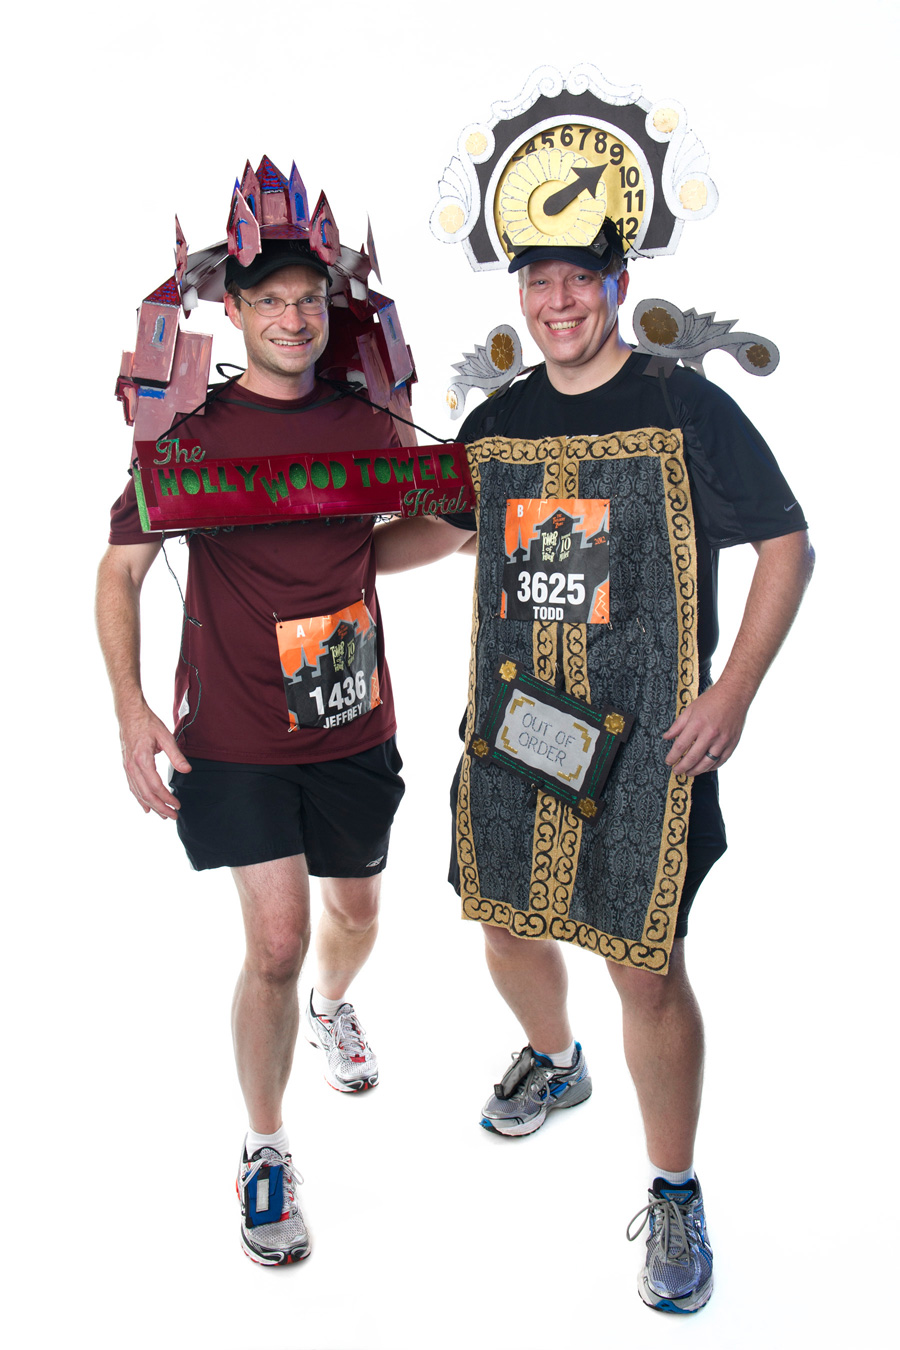 ... Running Costume The Hollywood Tower and Elevator What Lies Beyond the Fifth Dimension?  sc 1 st  Disney Parks & Vote for the Best runDisney Halloween Costume | Disney Parks Blog